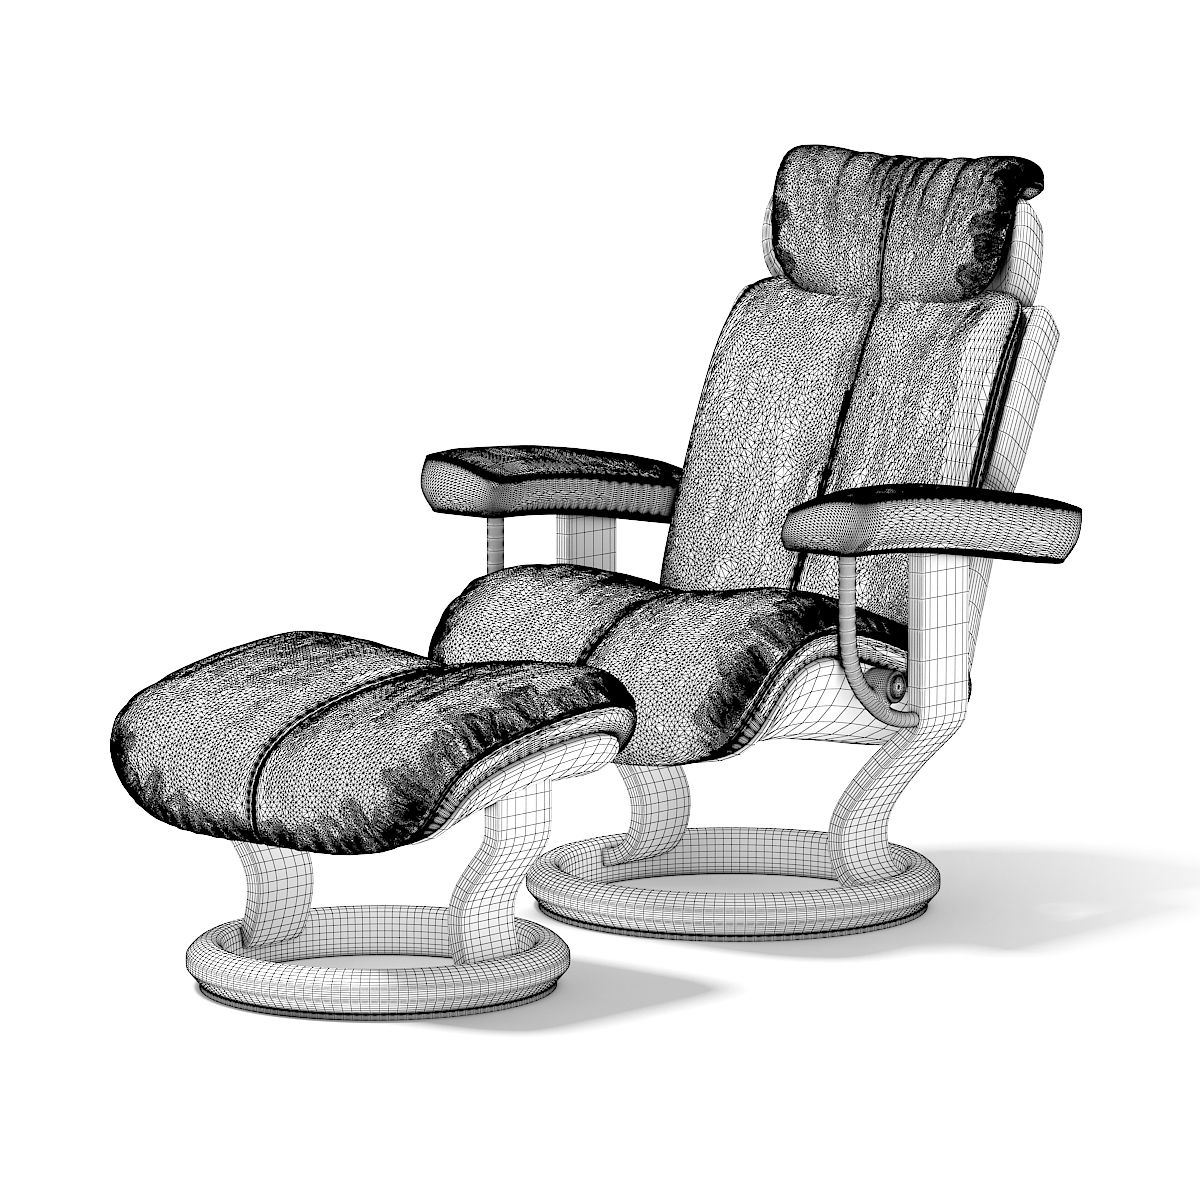 Black Leather Chair With Footrest Black Leather Chair Leather Chair Black Leather